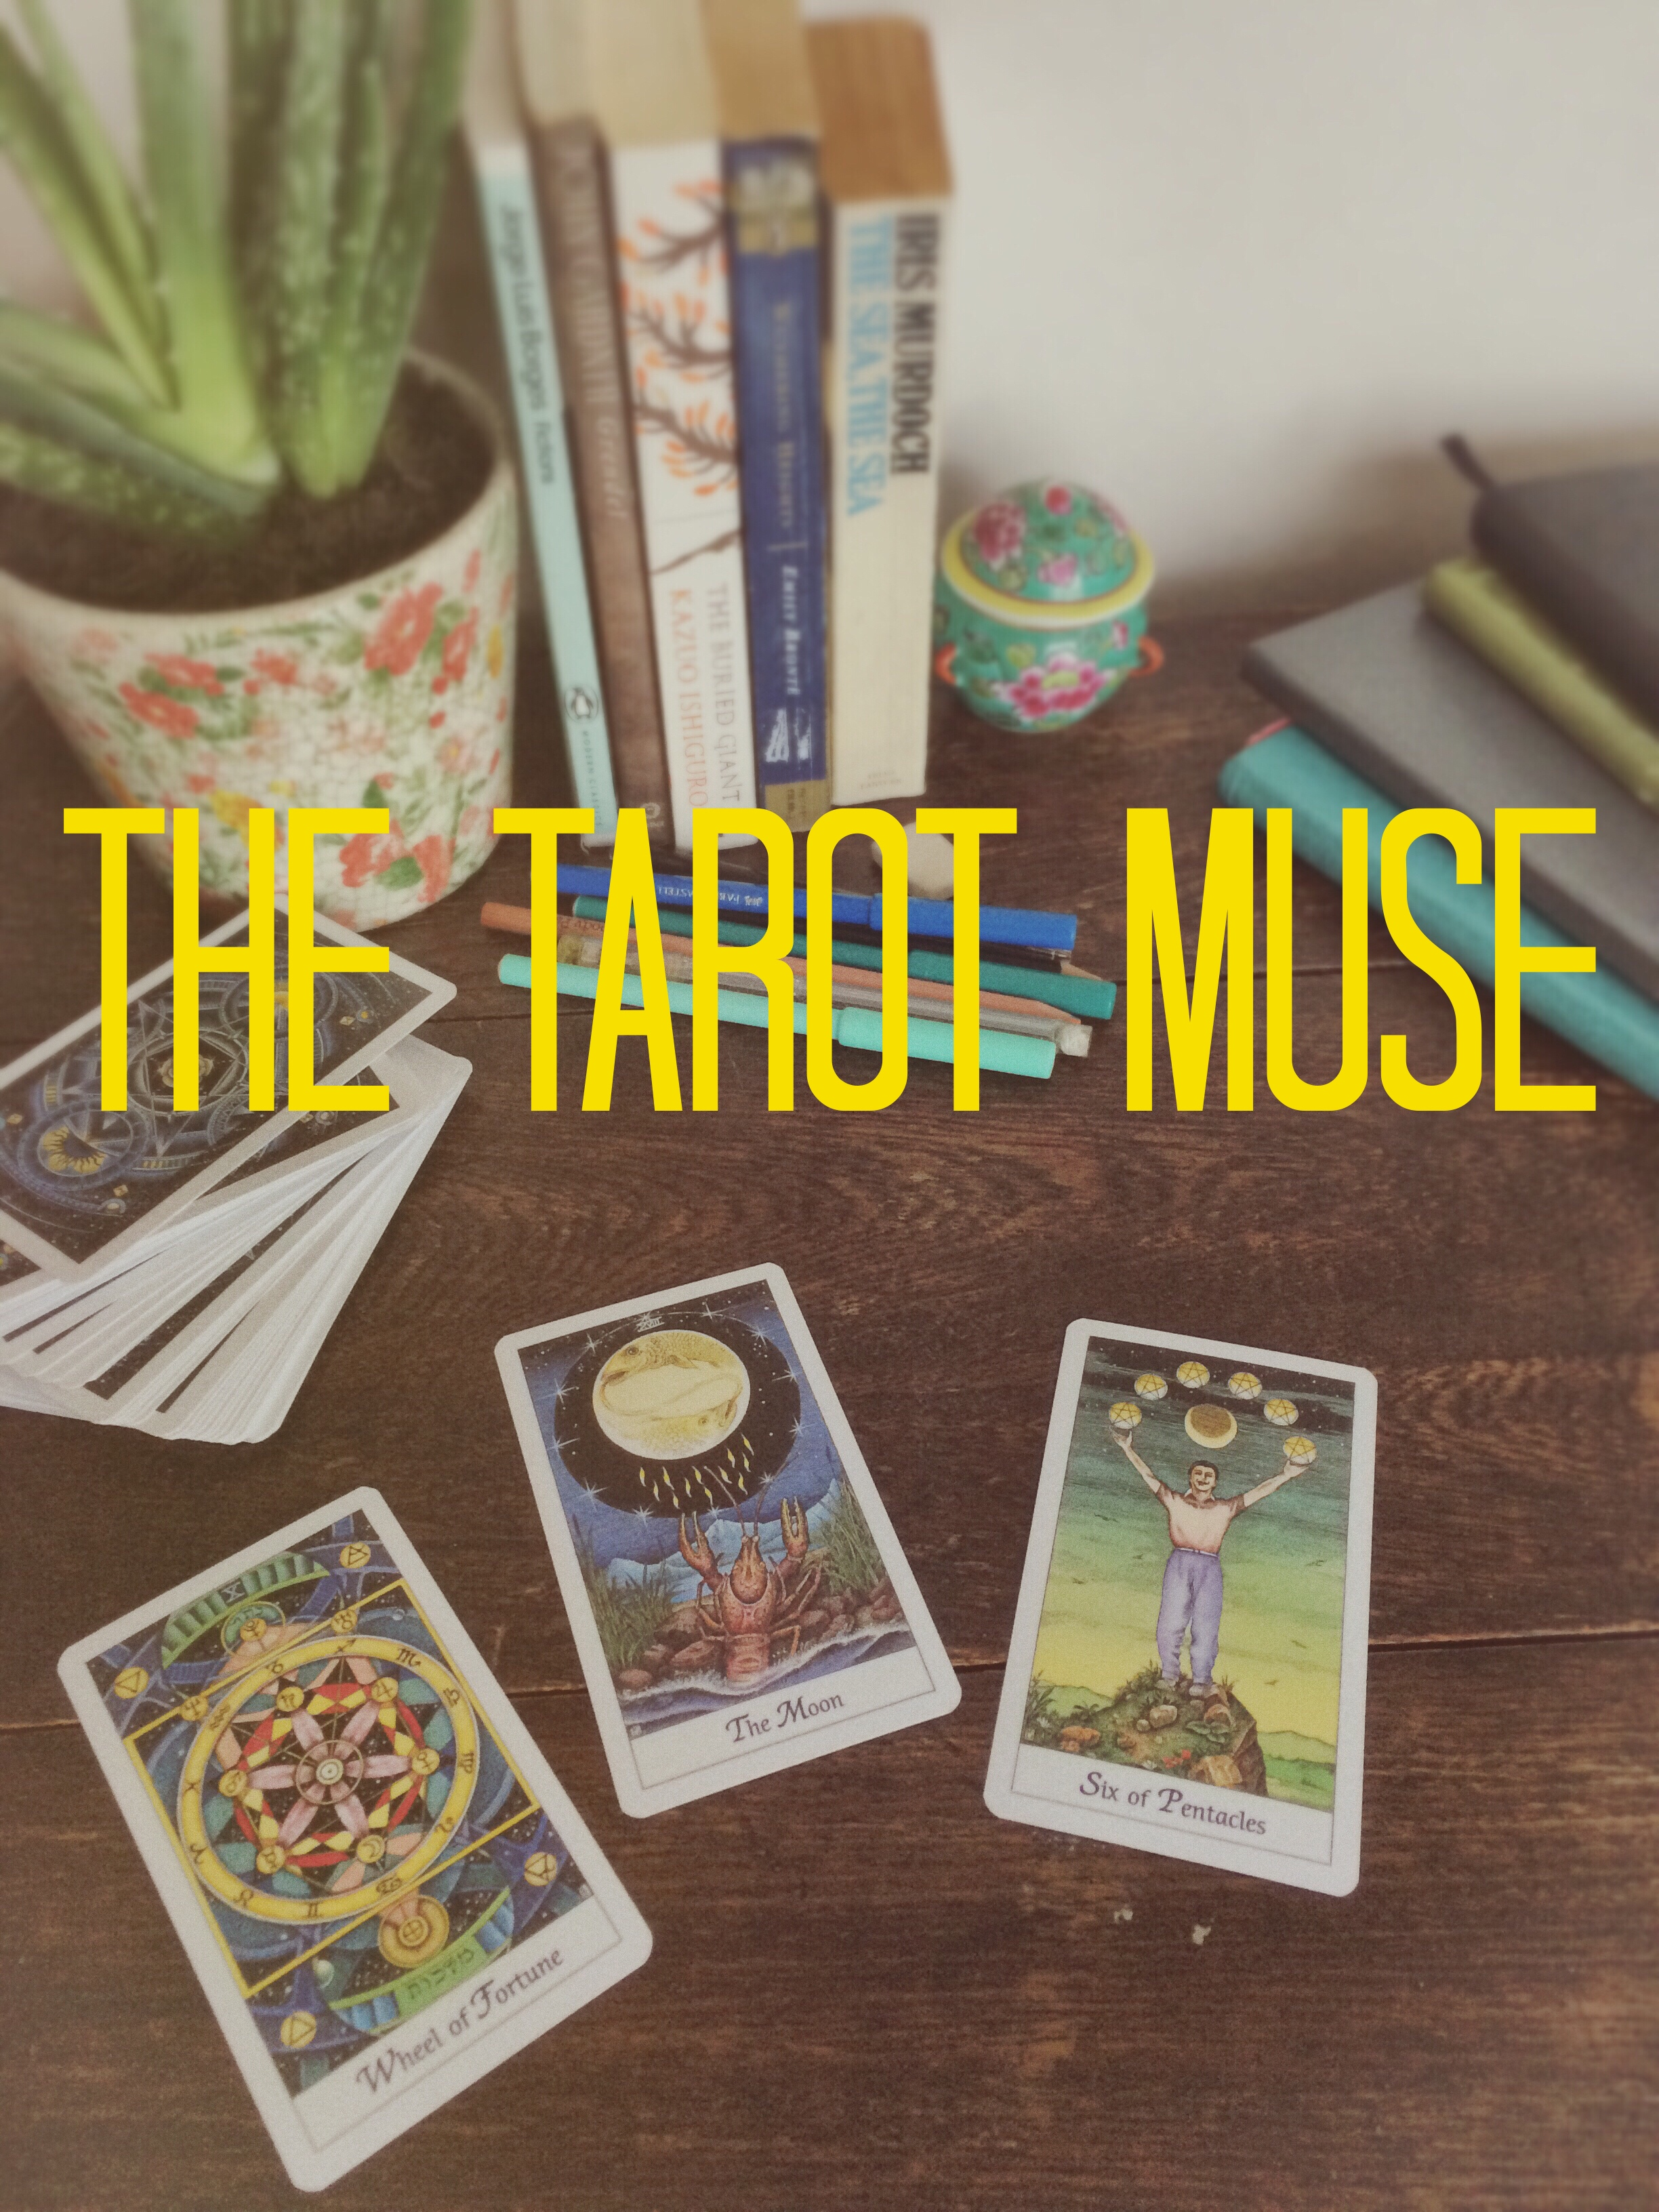 The Tarot Muse